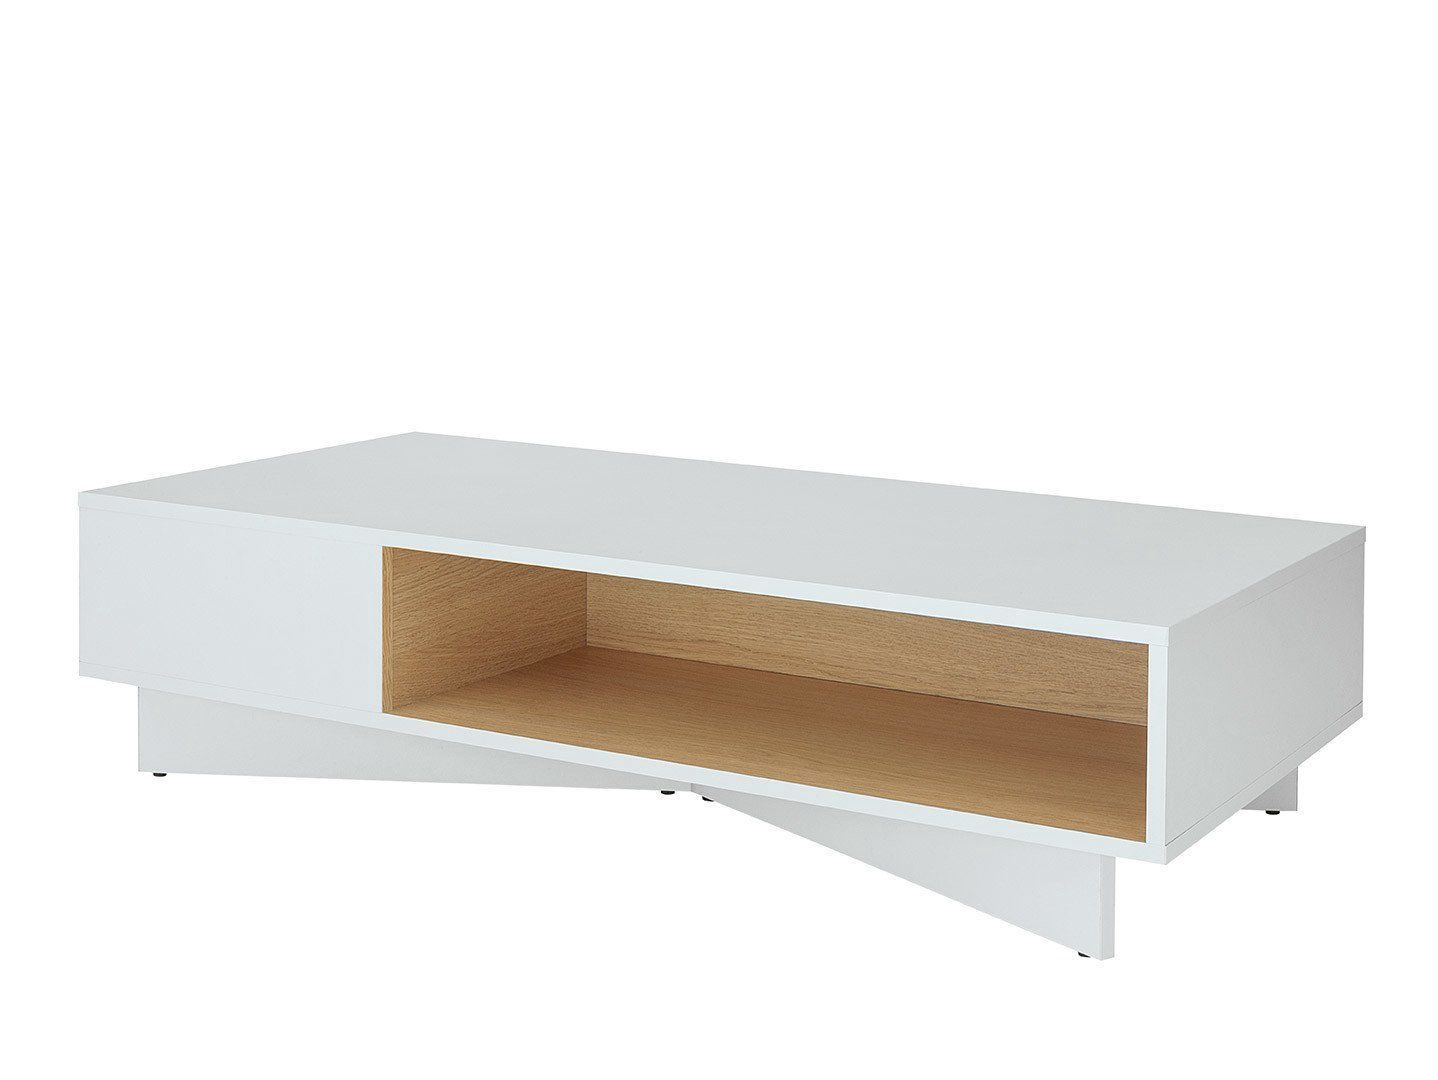 Black And White Coffee Table.Black Red White Modai Coffee Table 120x30 5x60cm White Canadian